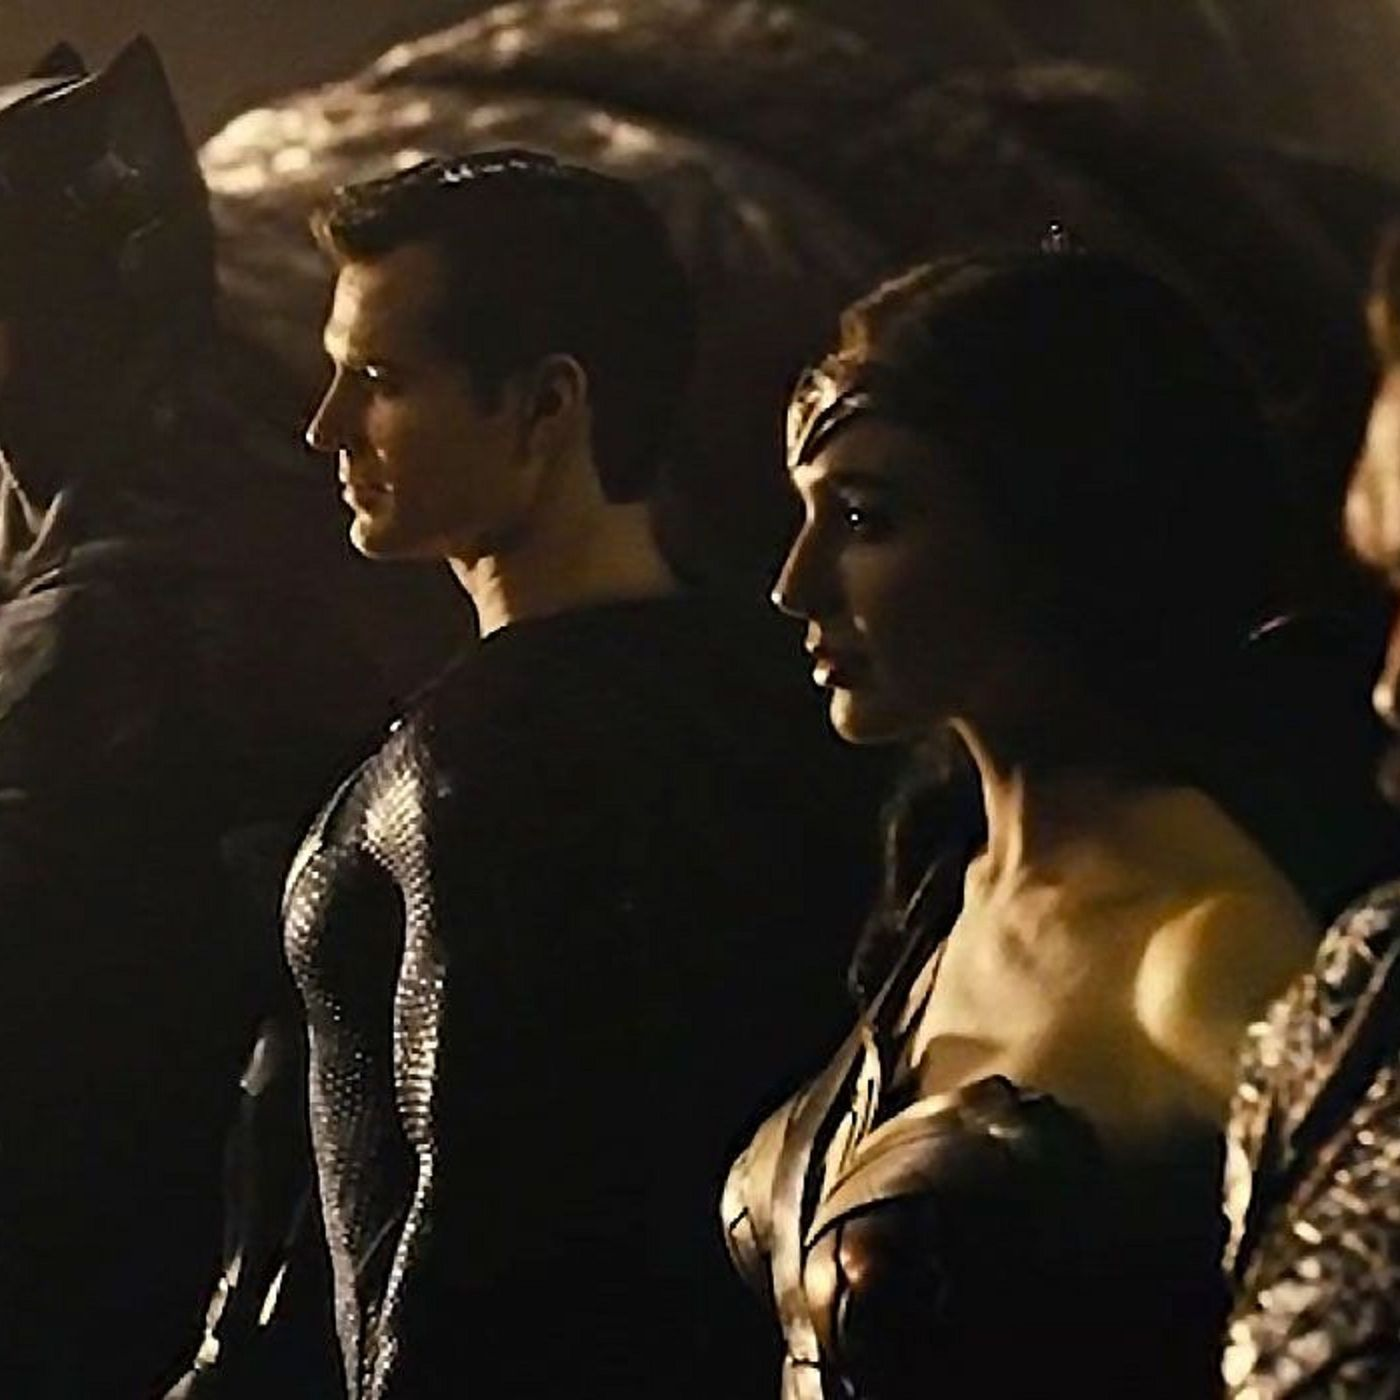 ...About Restoring the SnyderVerse